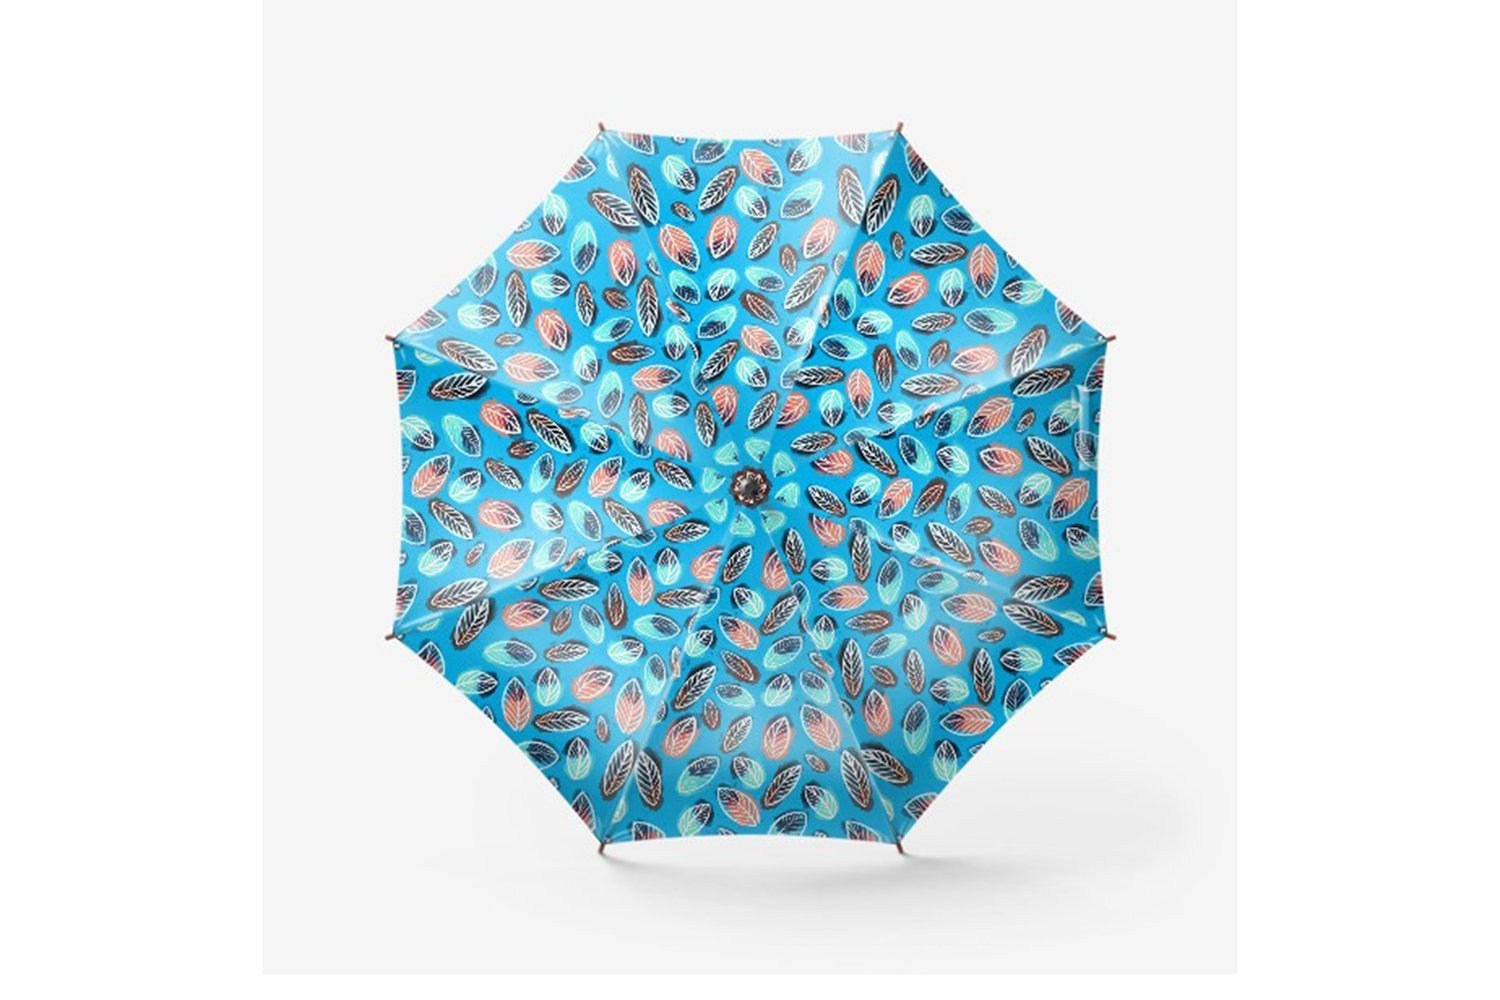 Blue umbrella with pillow.